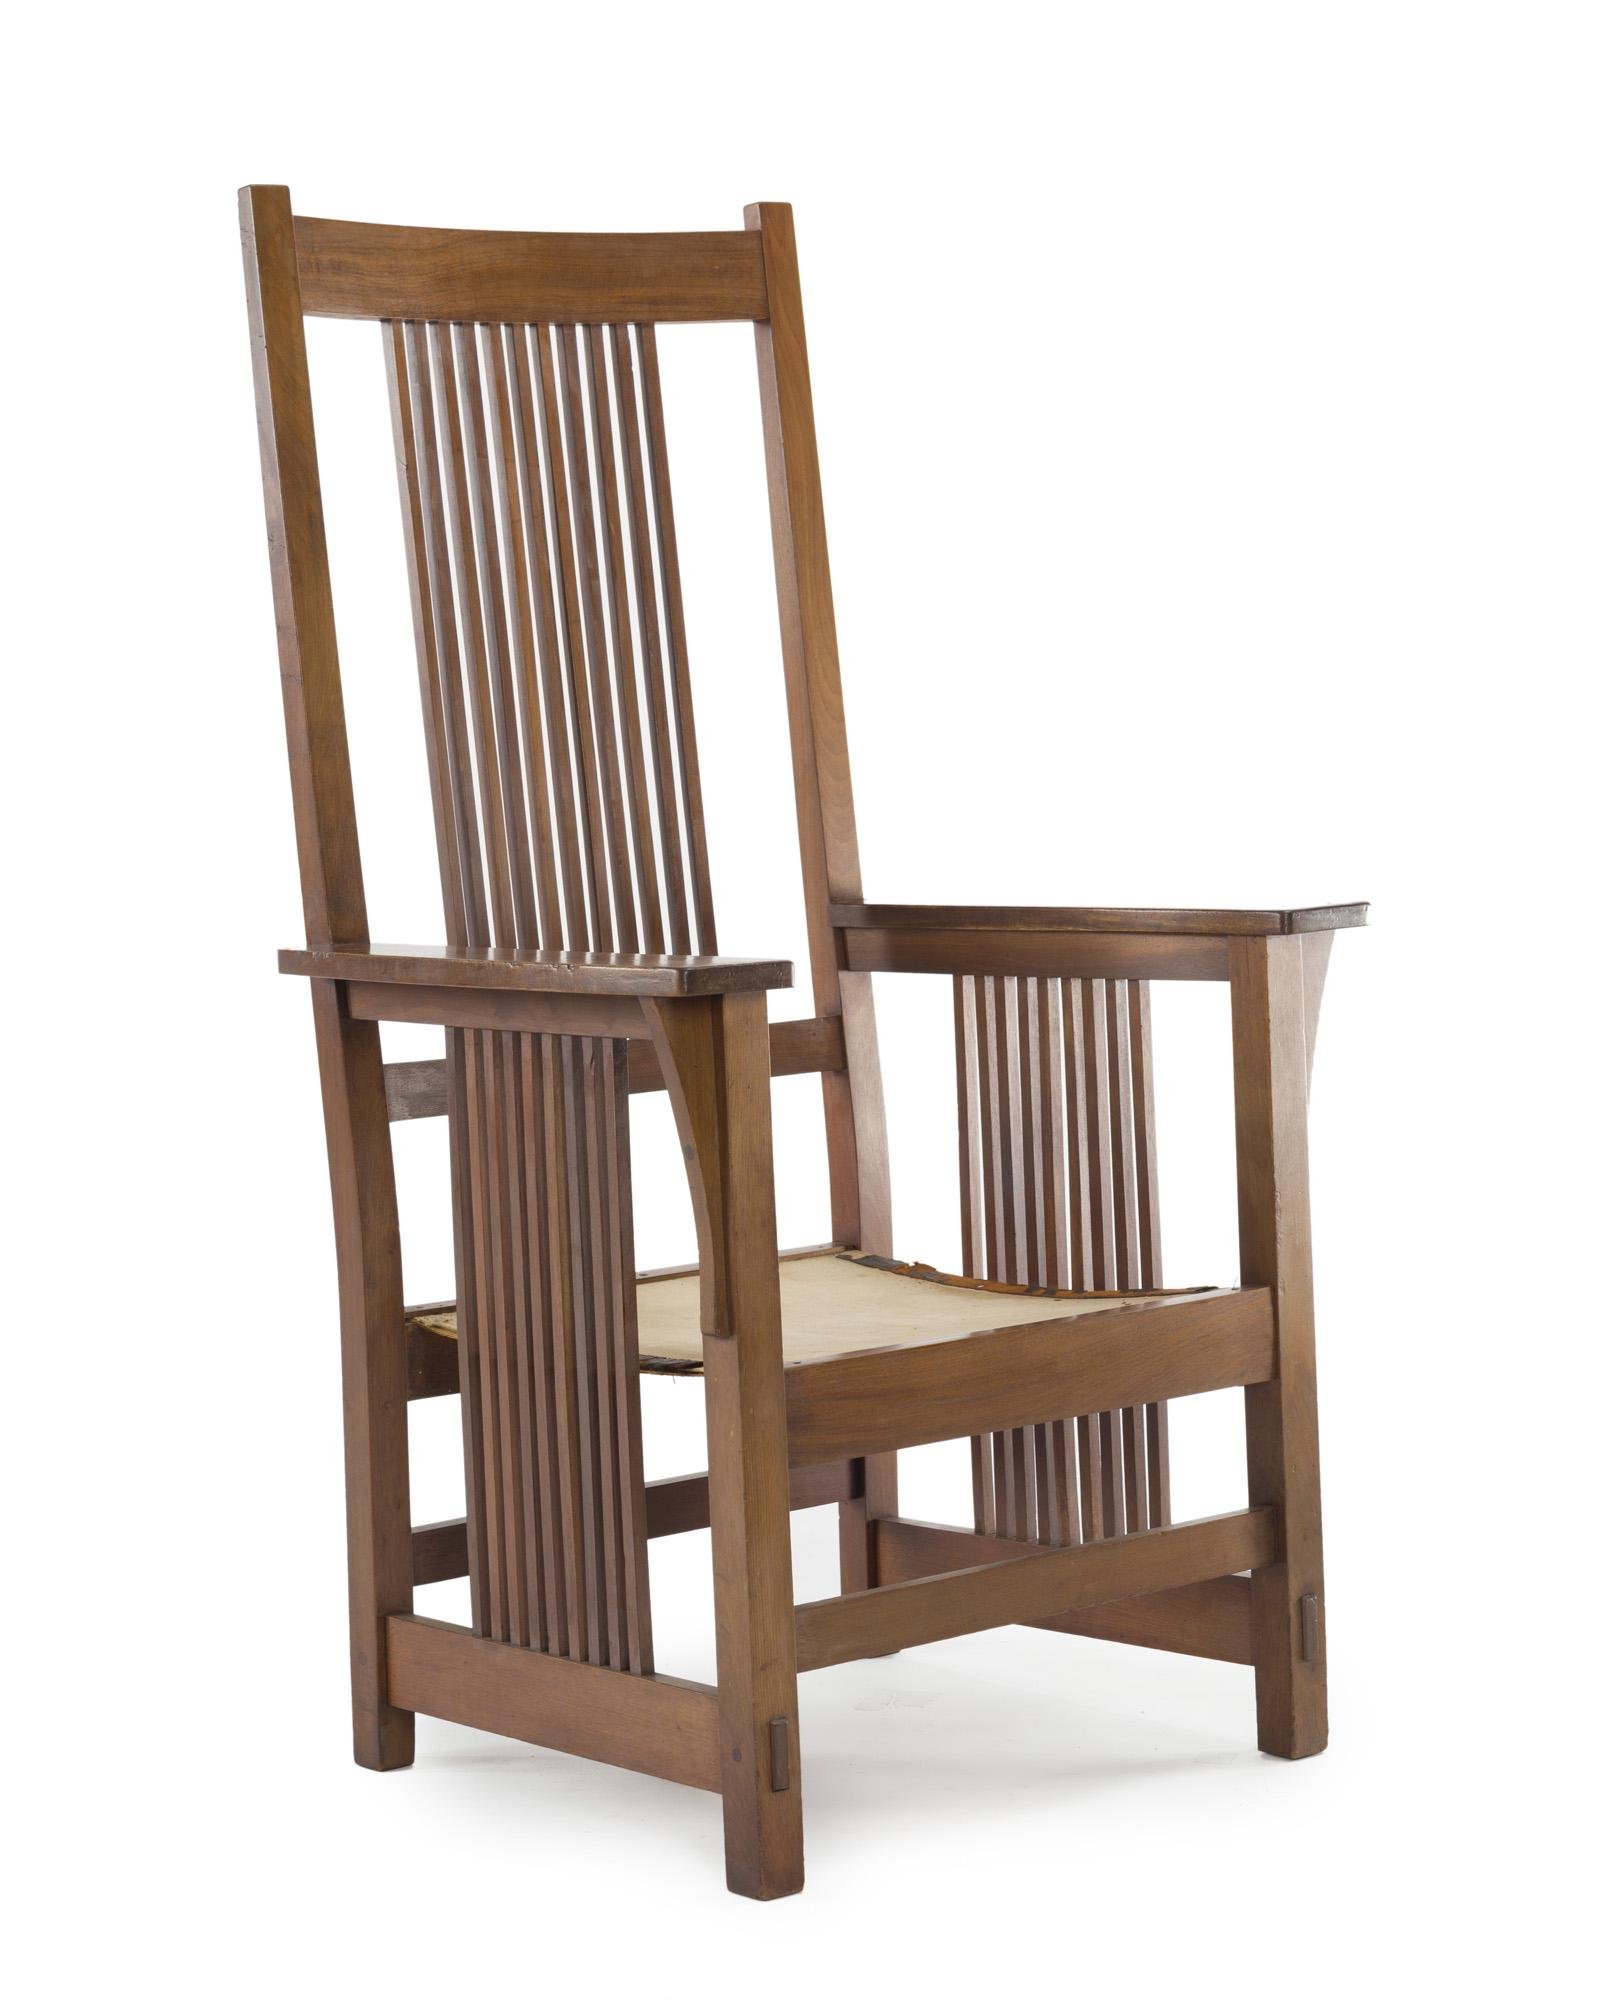 A Gustav Stickley oak spindle-arm chair, No. 384